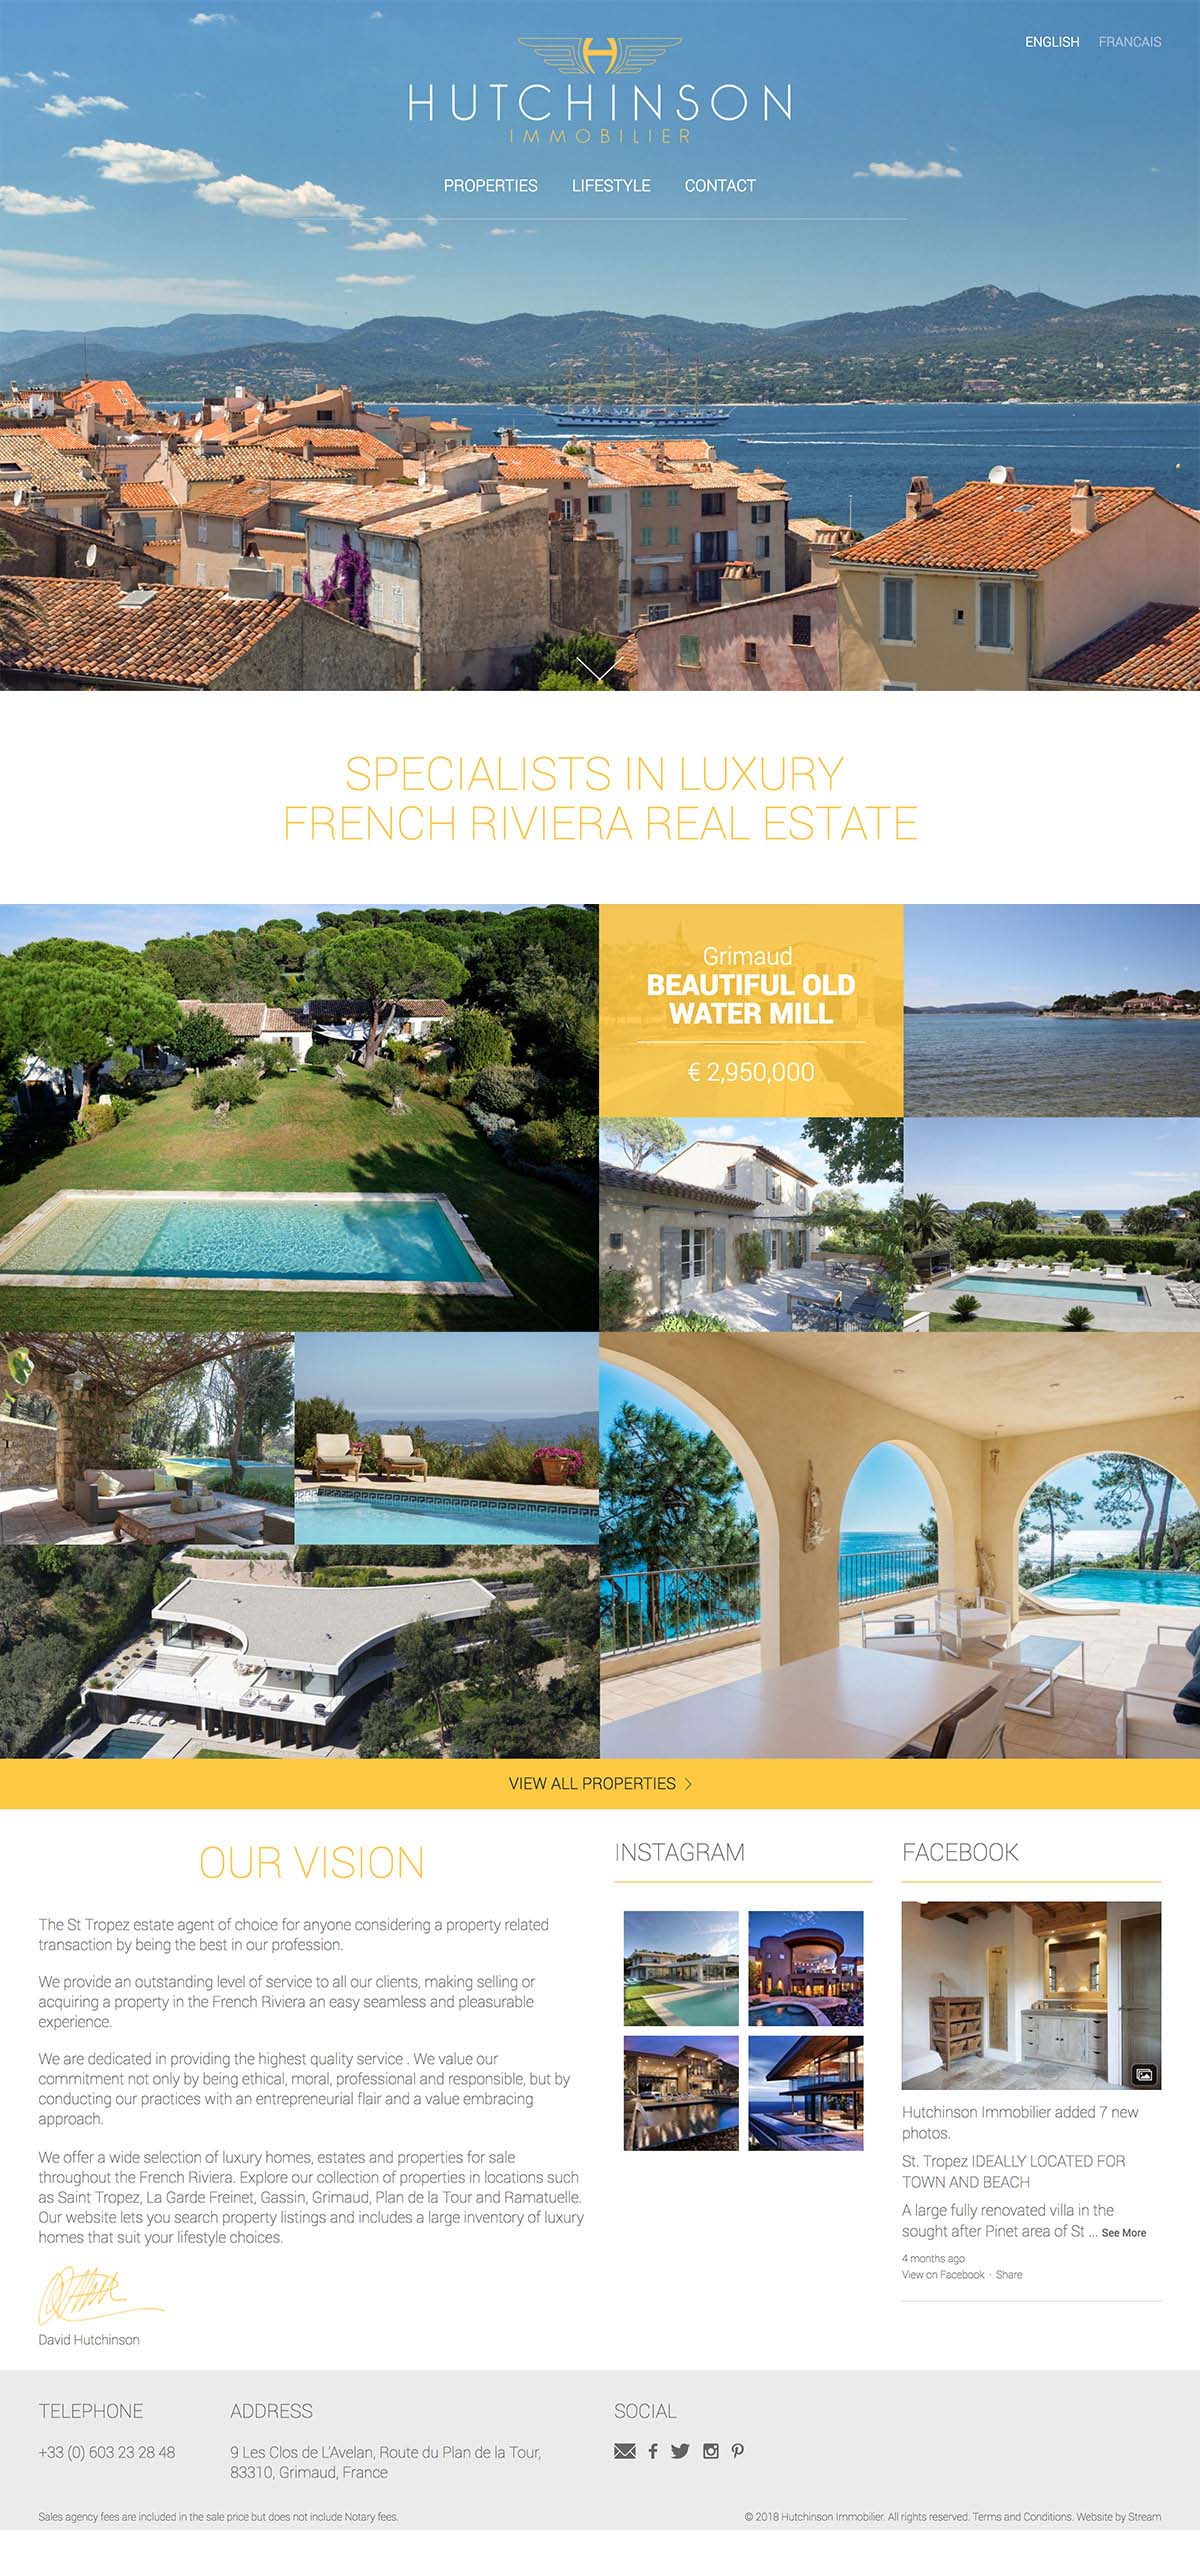 Hutchinson Immobilier luxury real estate website